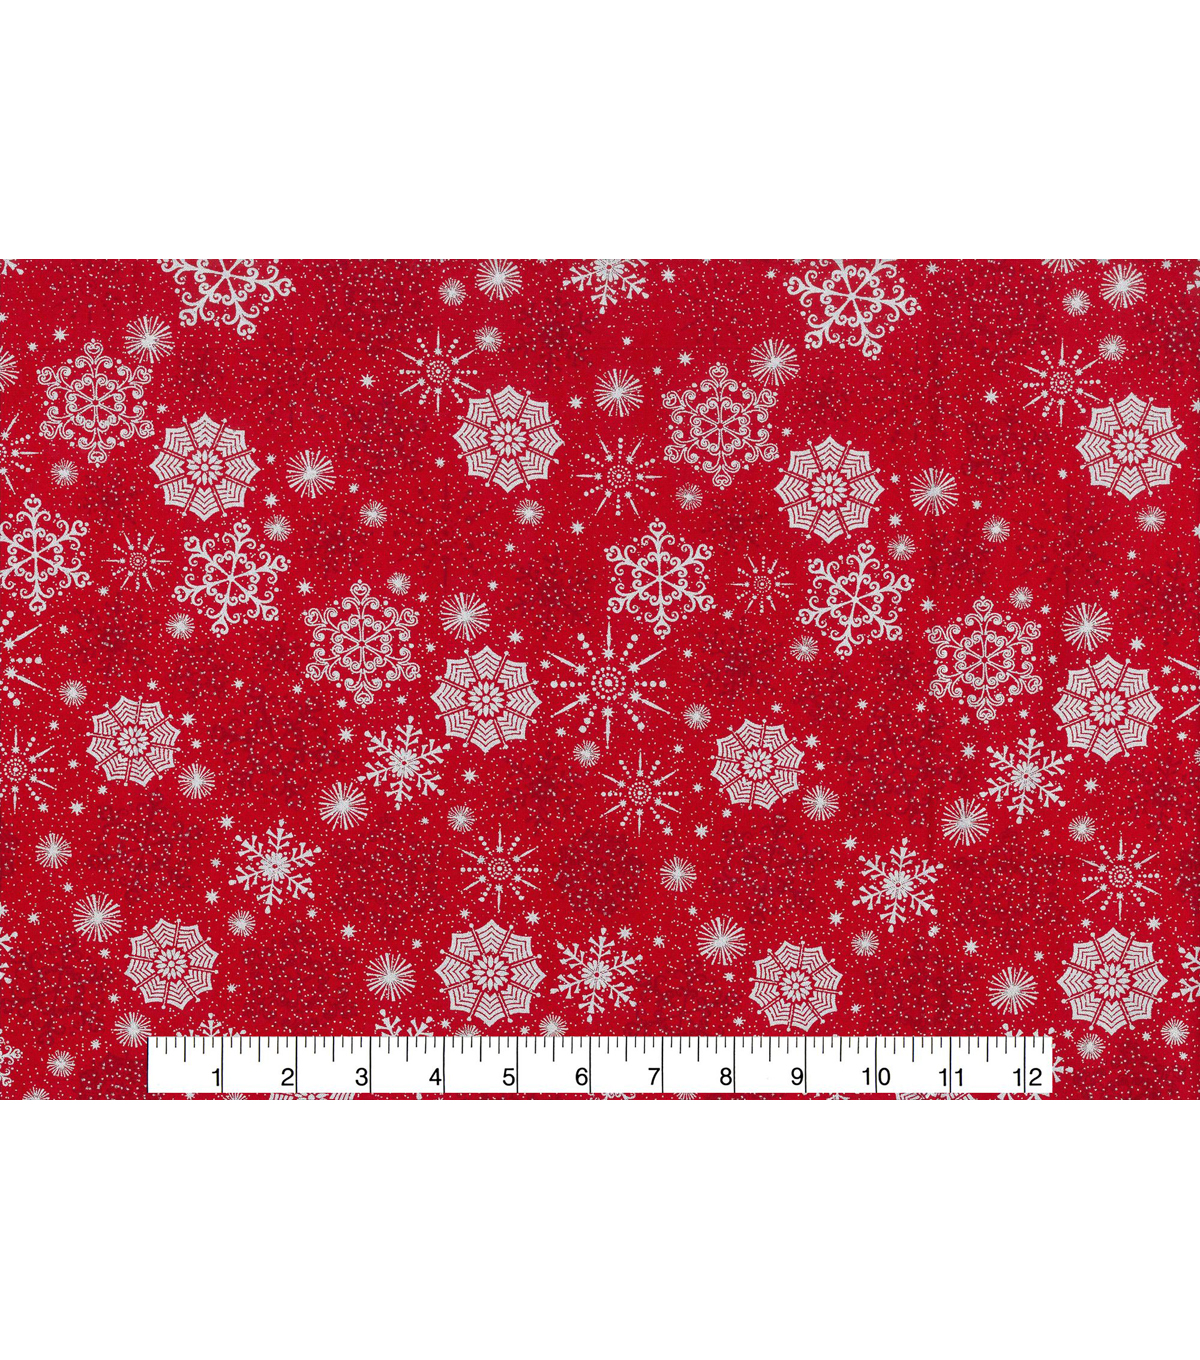 Keepsake Calico™ Holiday Cotton Fabric 43\u0022-Metallic Snowflake